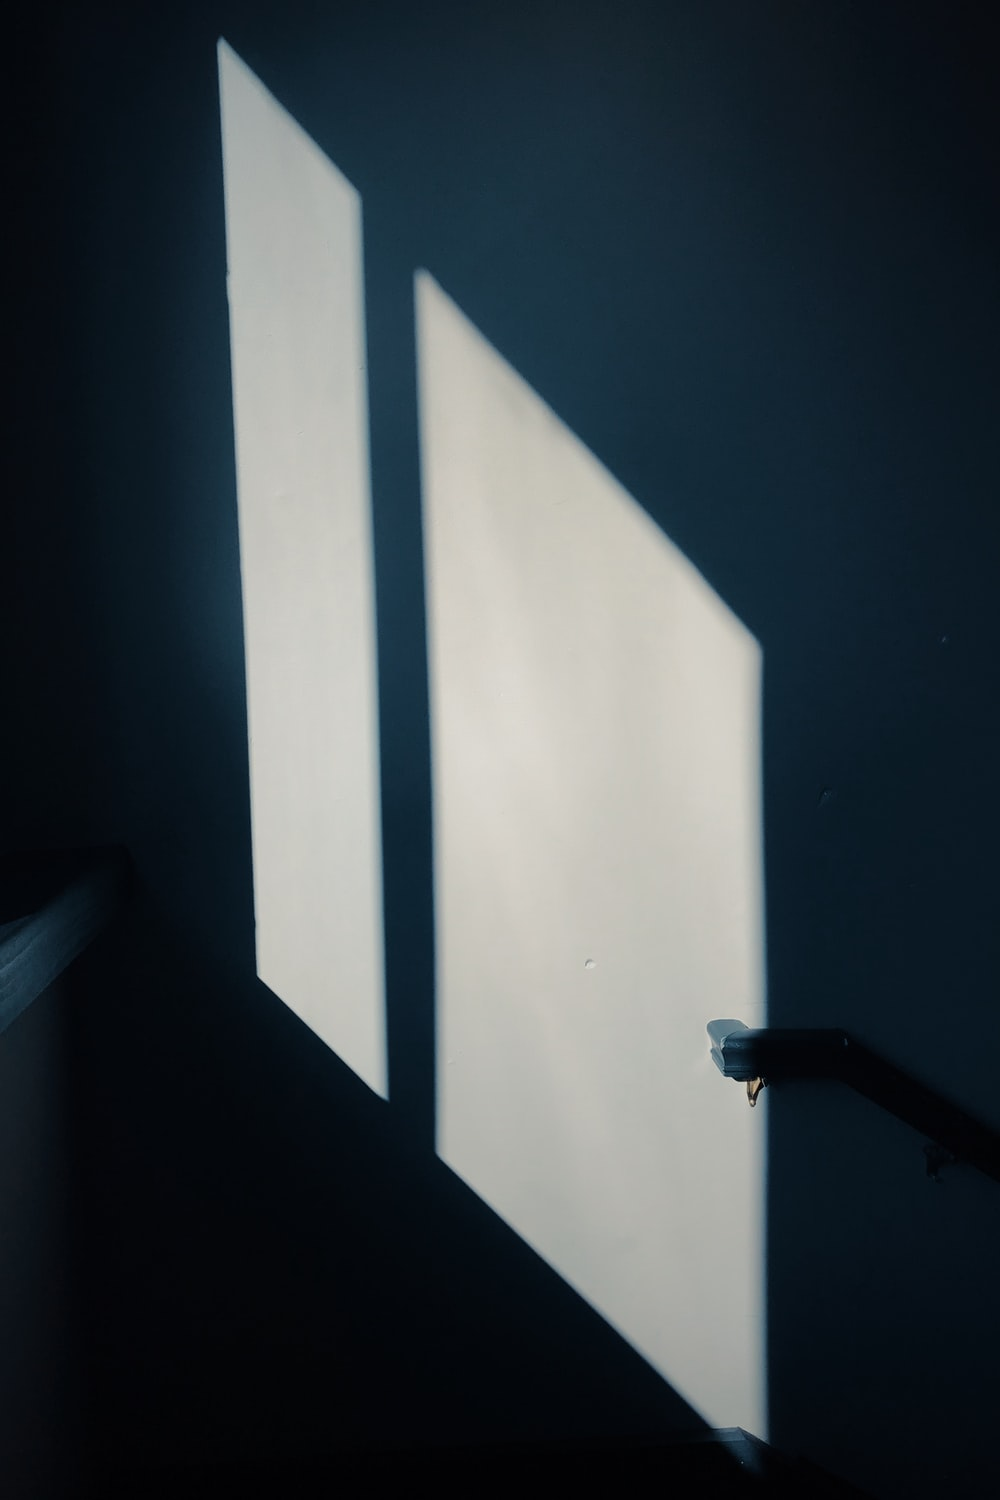 shadow of a window on white wall